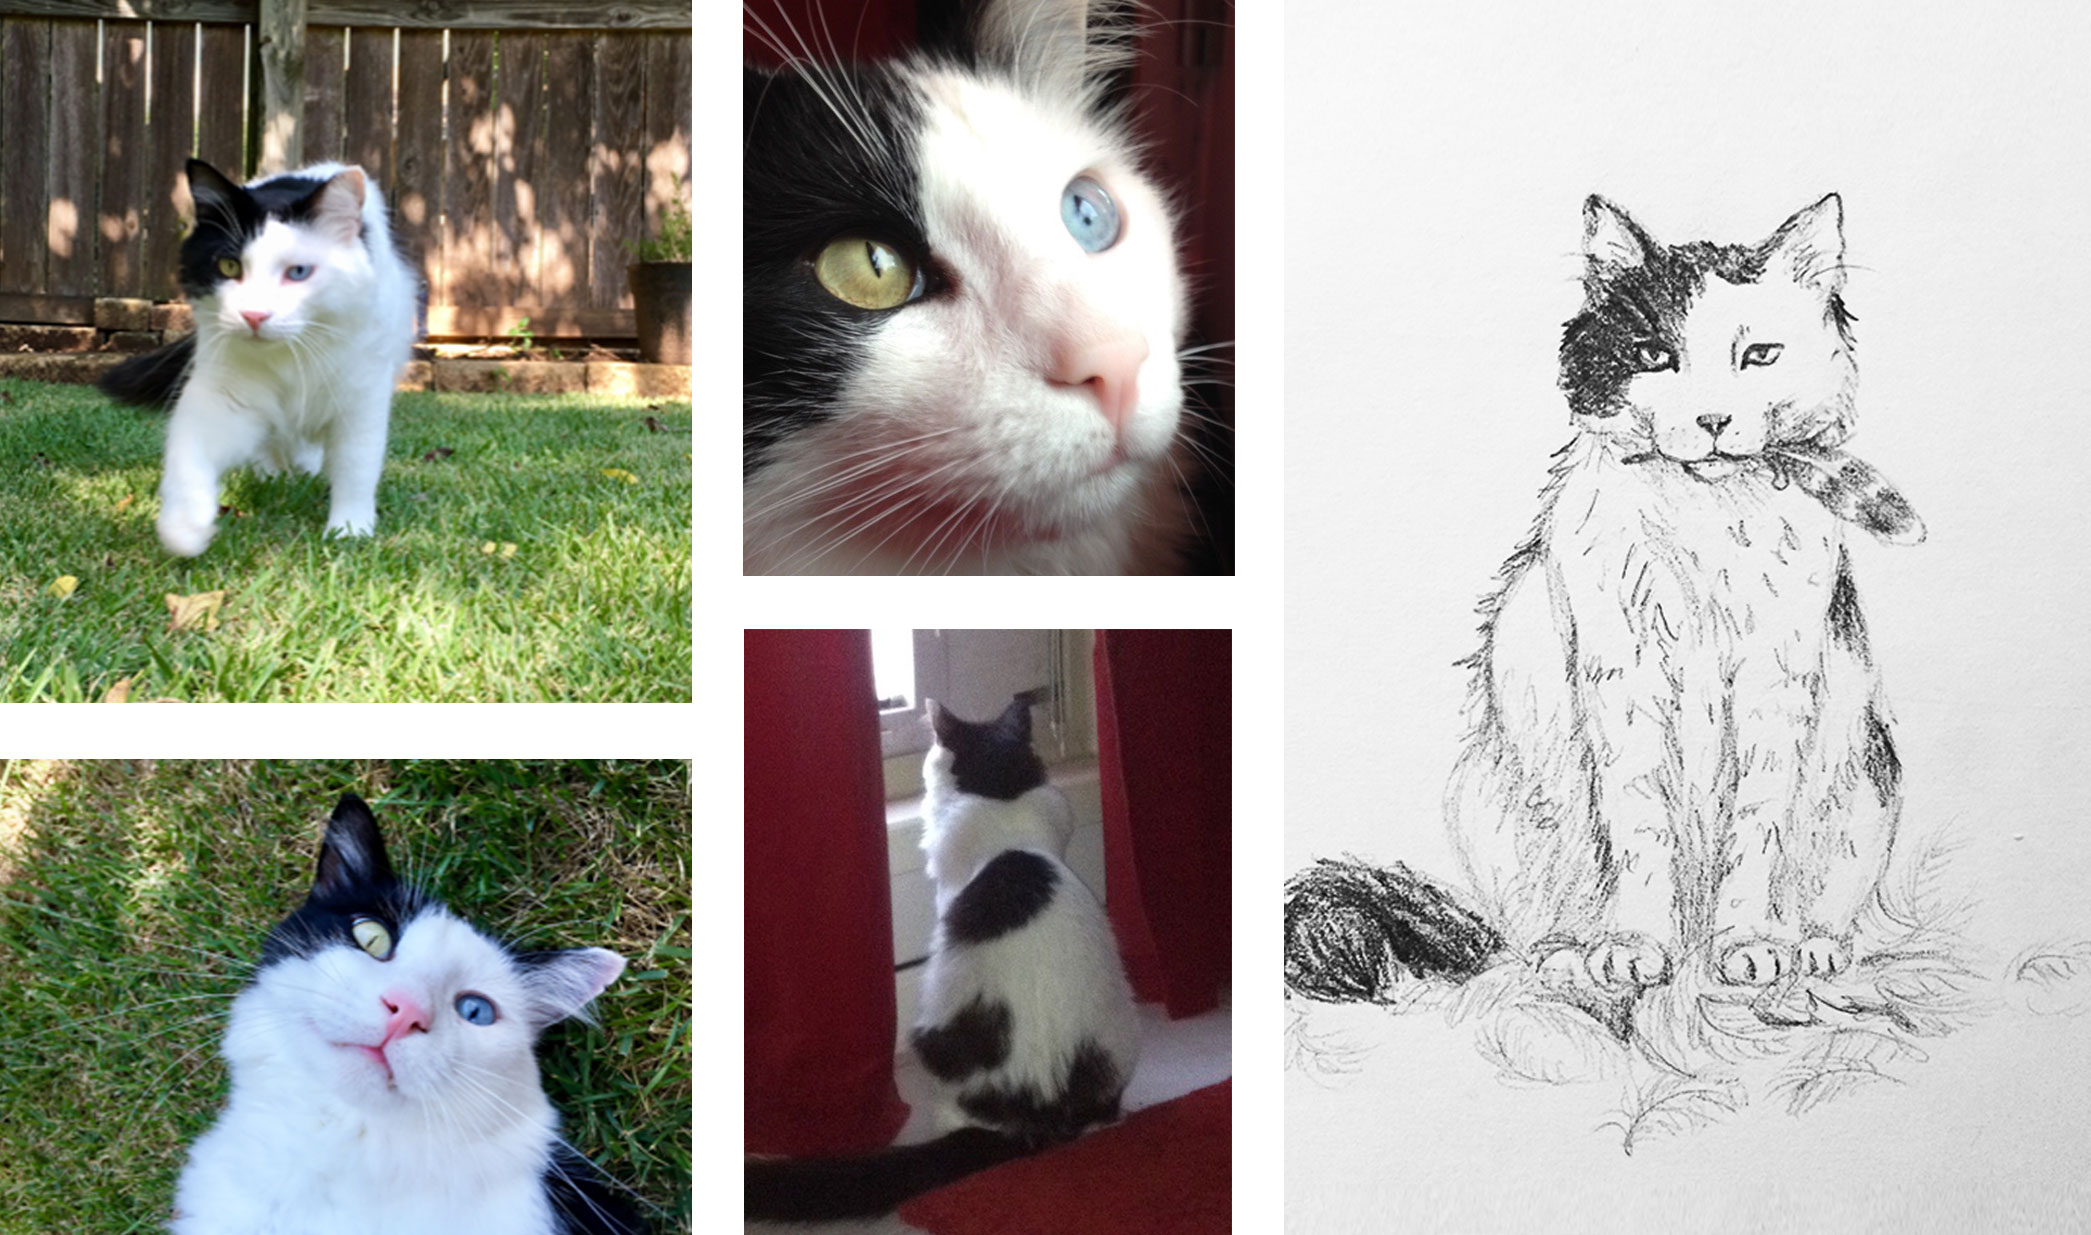 reference photos and initial sketch